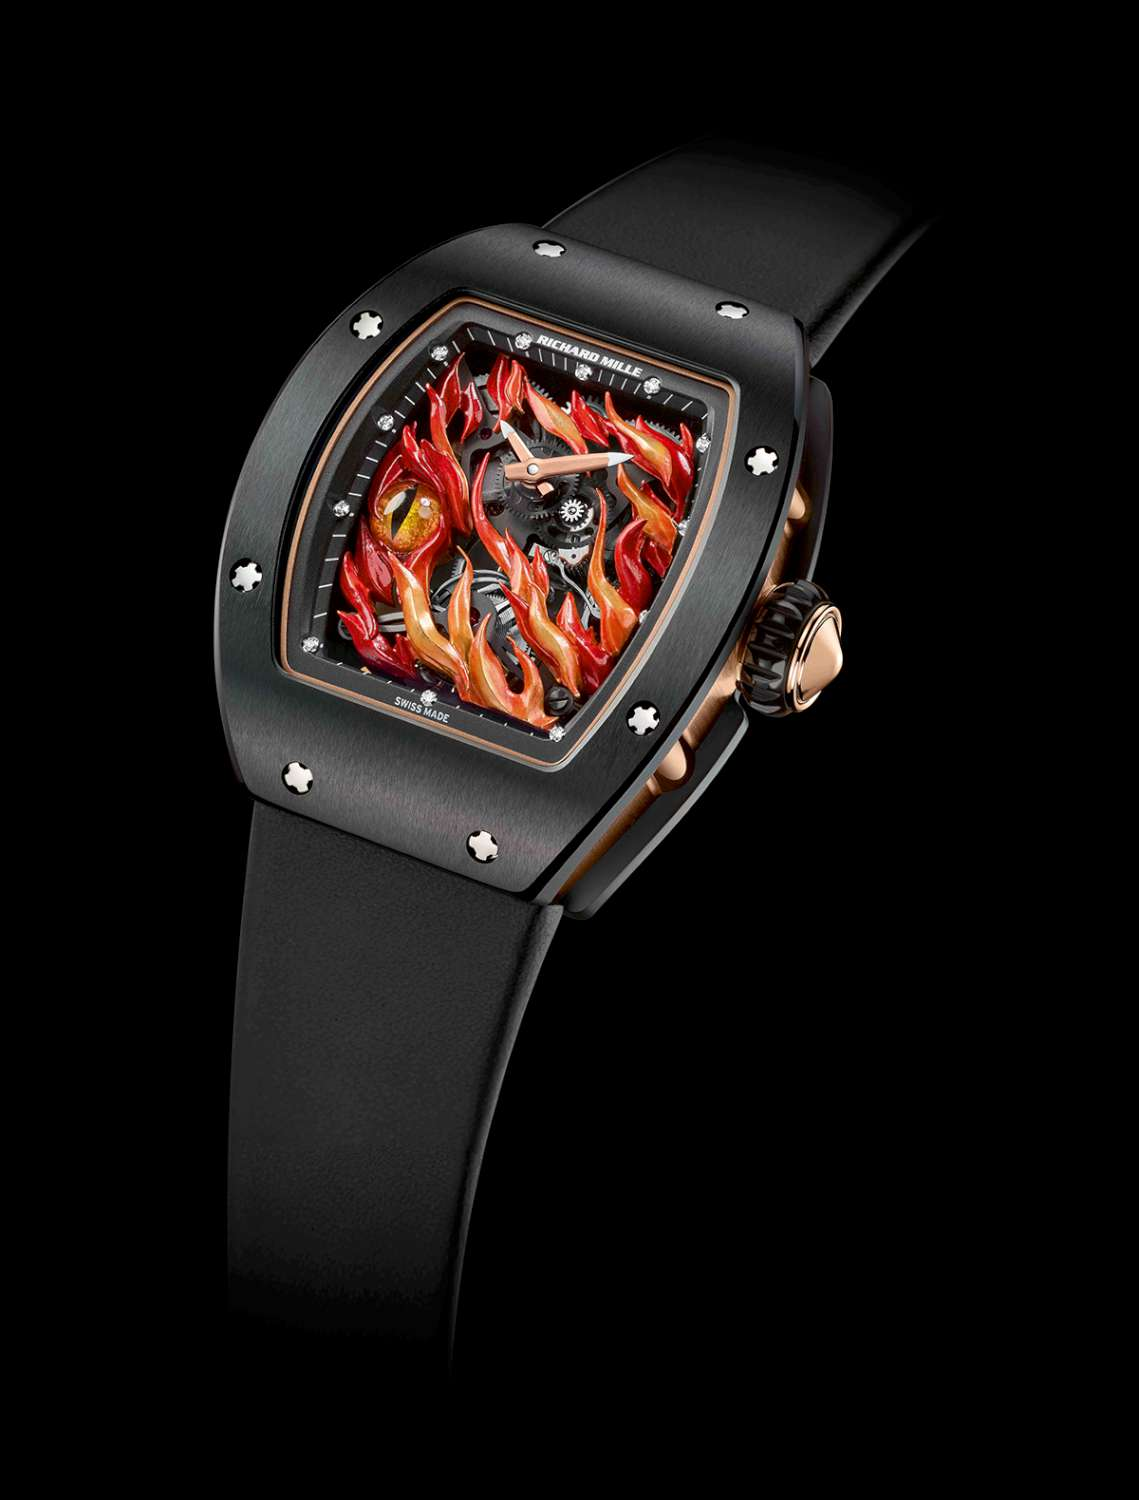 Watch On Fire The Richard Mille Evil Eye Rm 26 02 Tourbillon Time